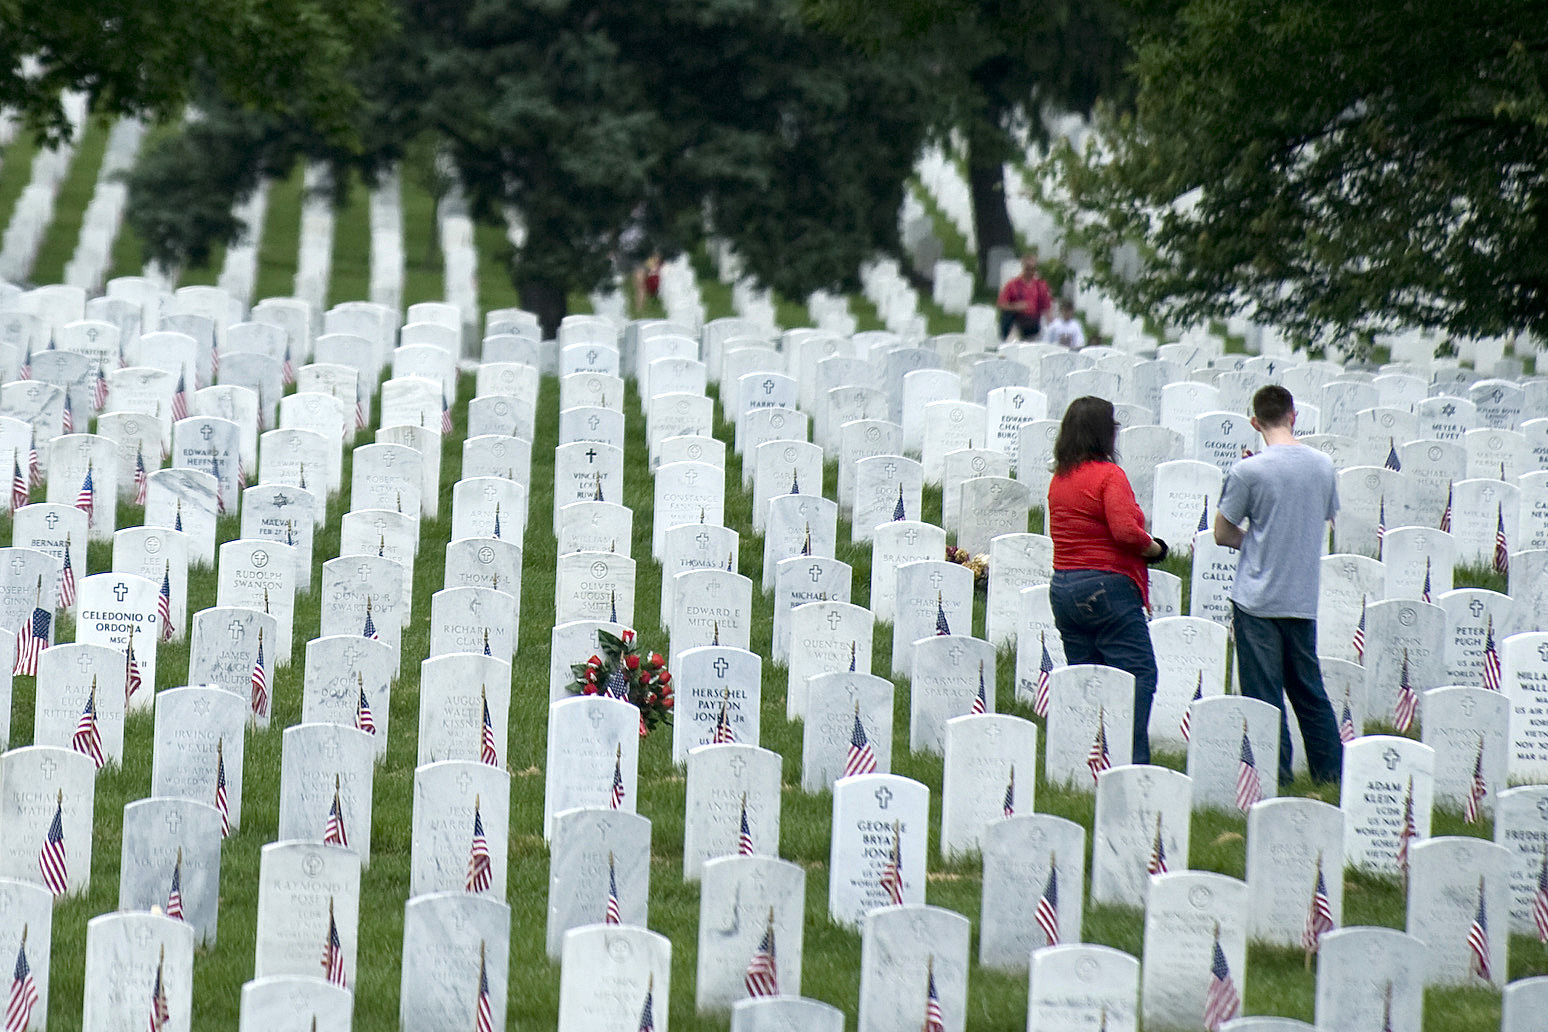 Stock Photo of People Visiting a Military Gravesite at Arlington.